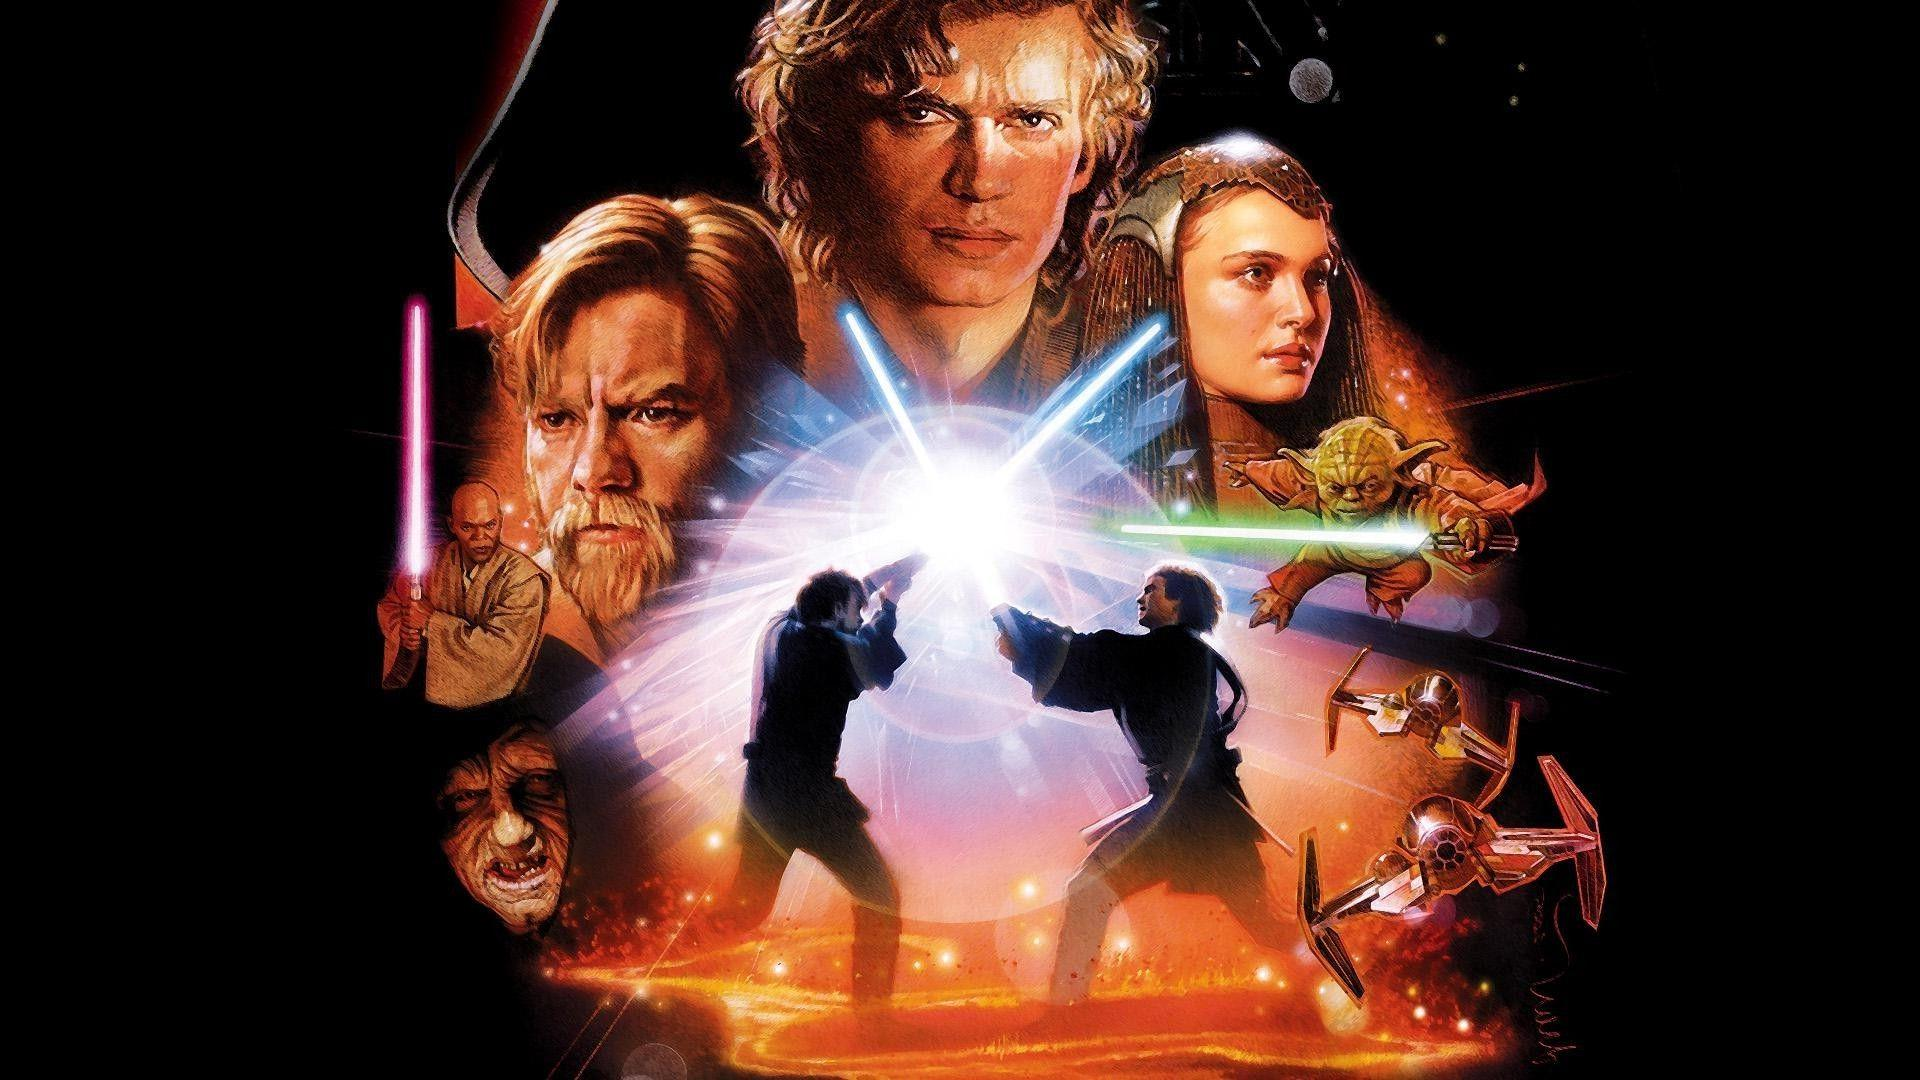 Star Wars Episode Iii Revenge Of The Sith Wallpapers